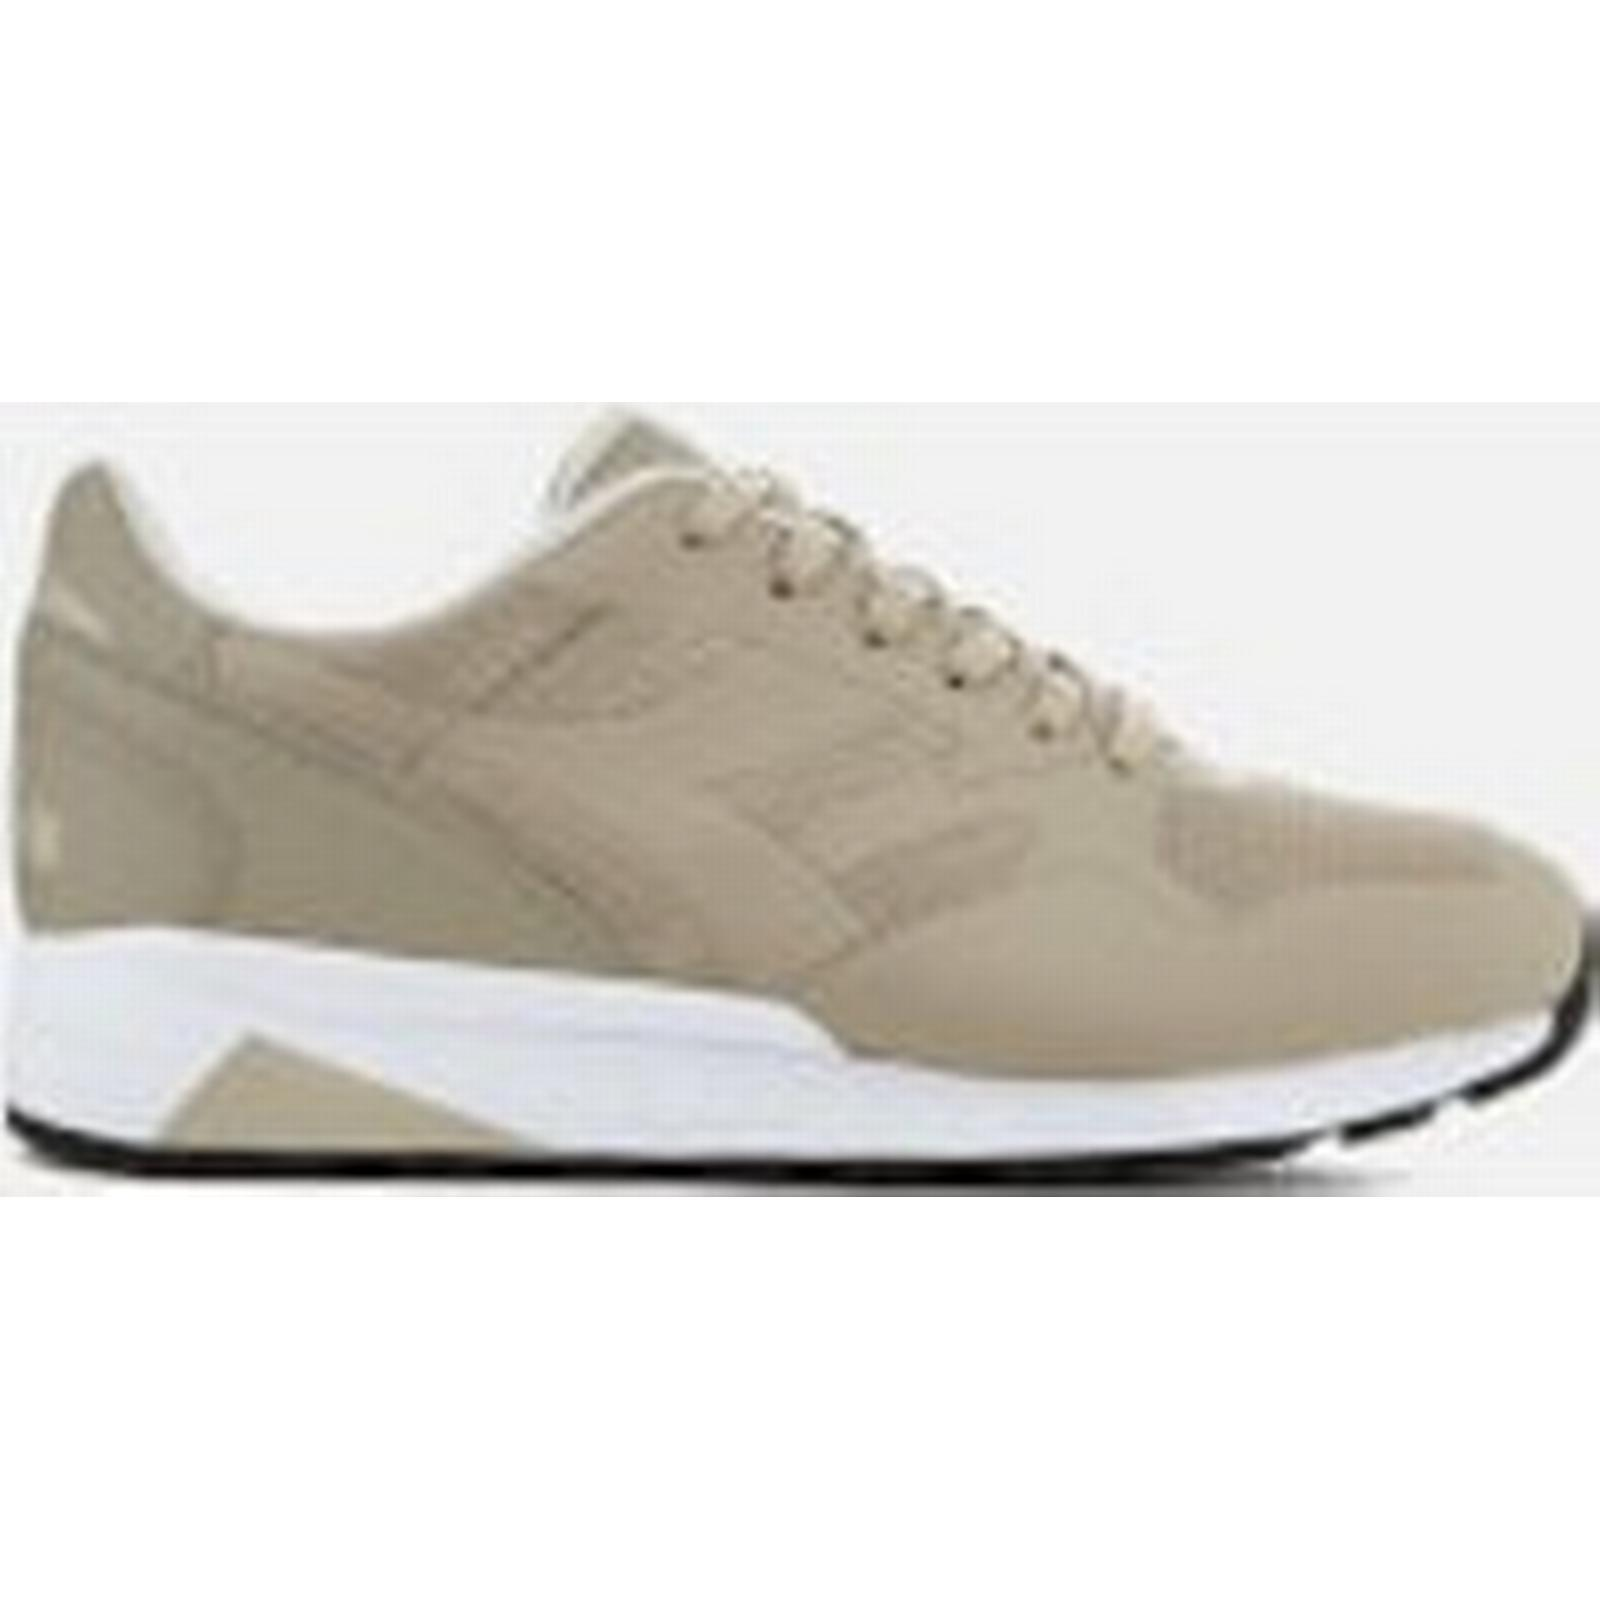 Diadora Men's N902 MM Trainers - 7 Grey Cobblestone - UK 7 - - Beige 597441